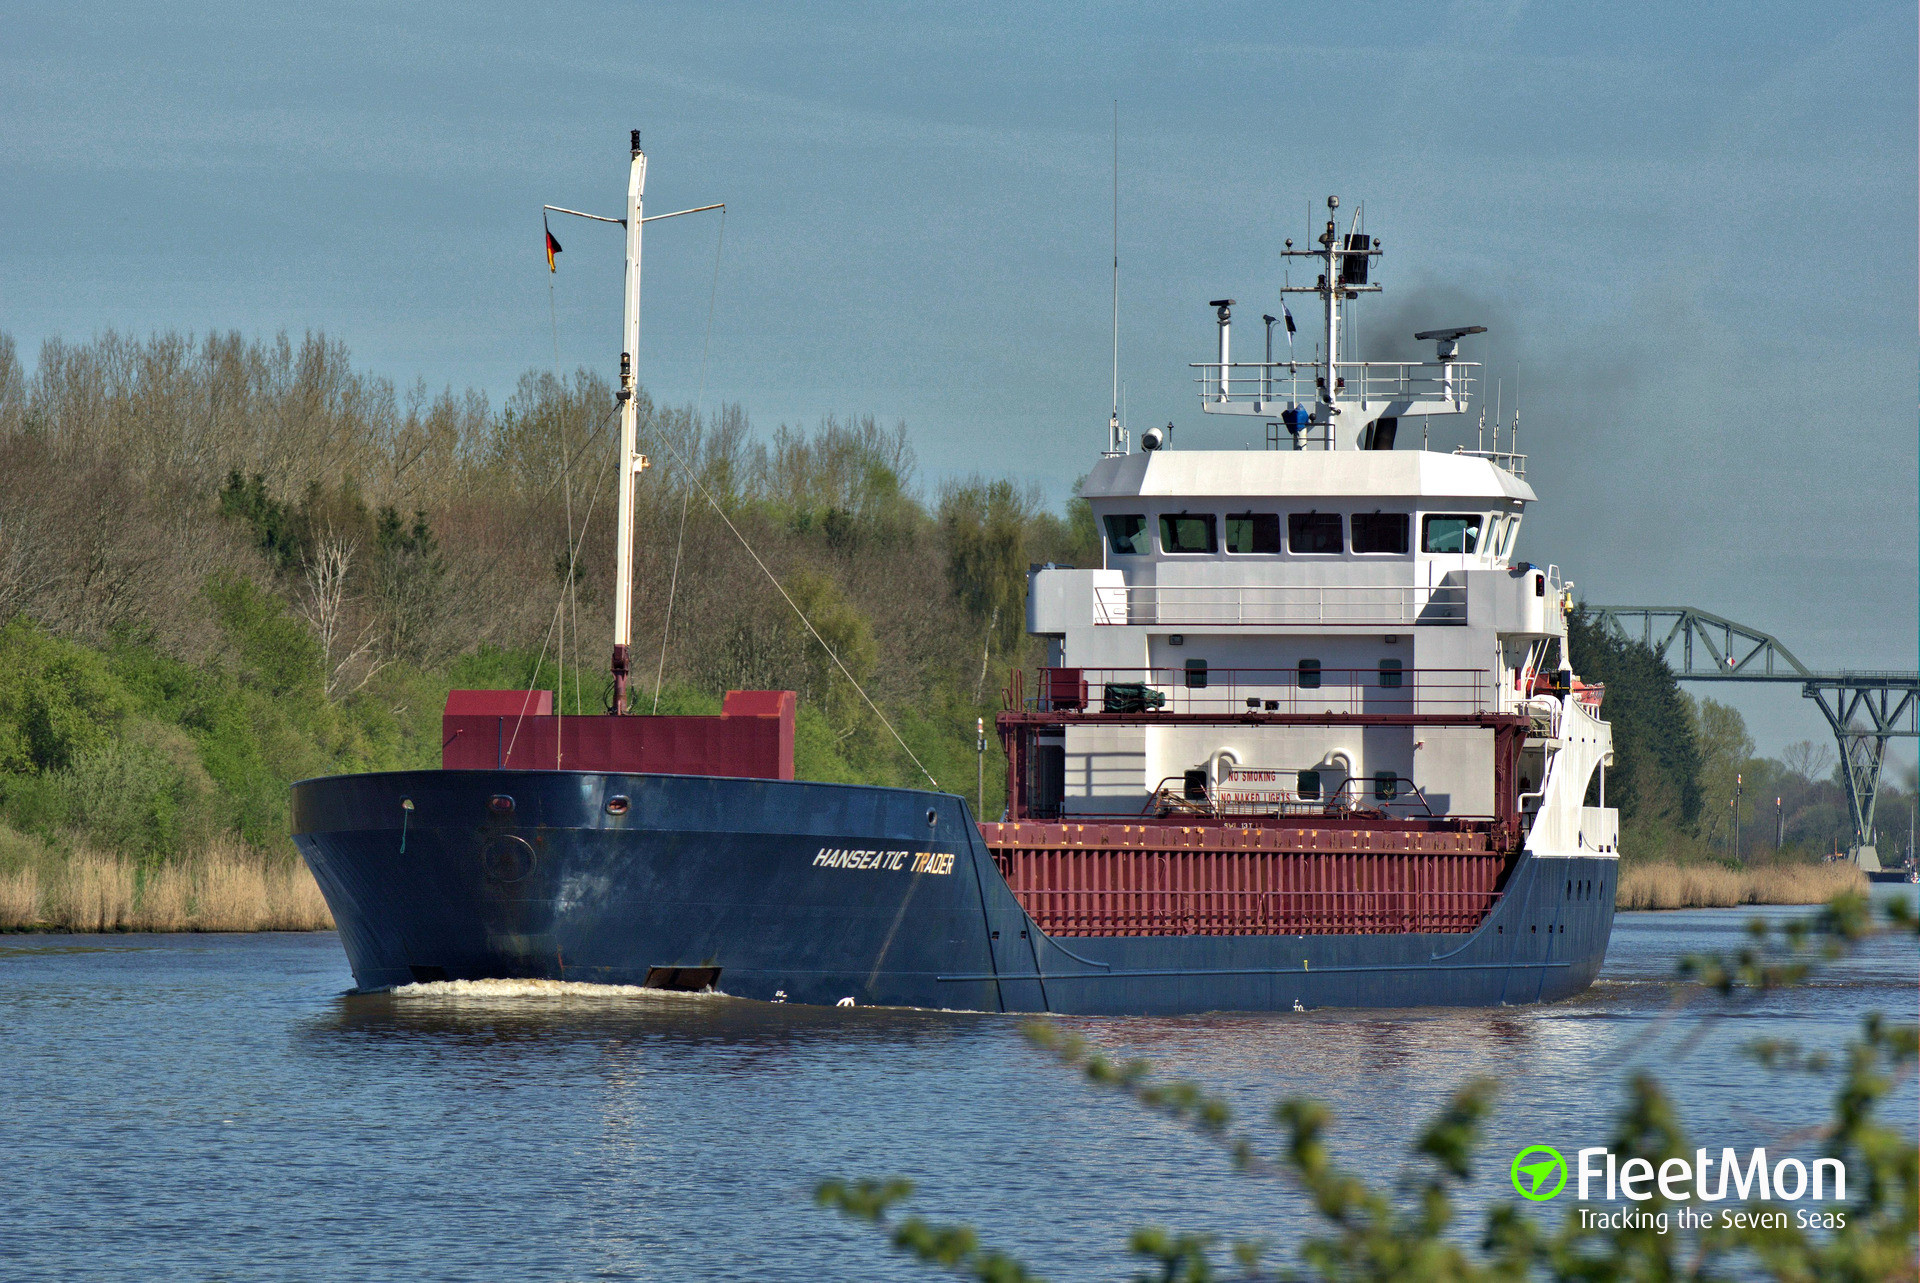 Disabled freighter towed to Brest